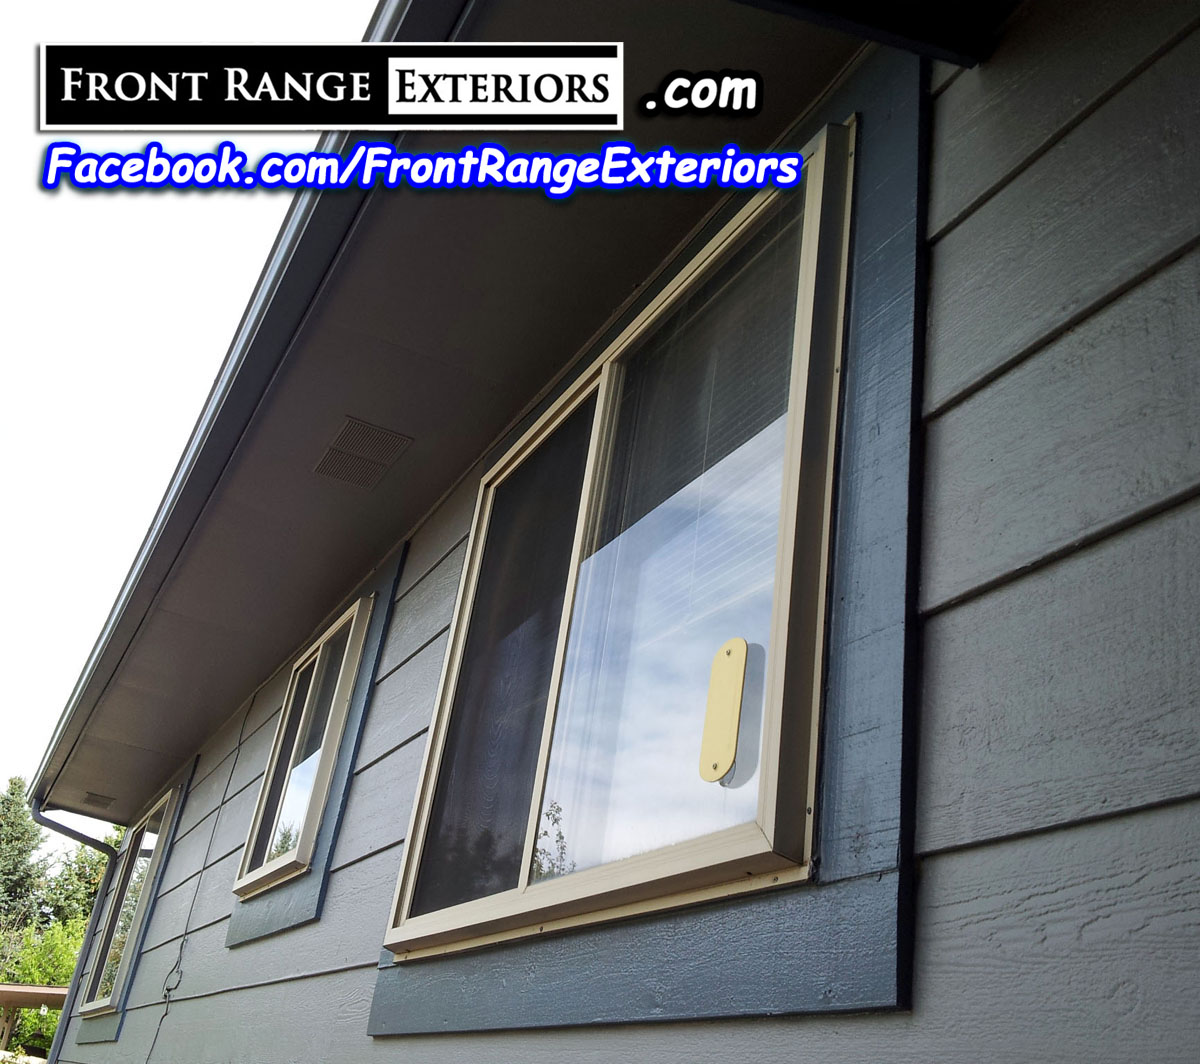 Windows Webster Exteriors Inc: New Windows Colorado Springs Replacement Windows